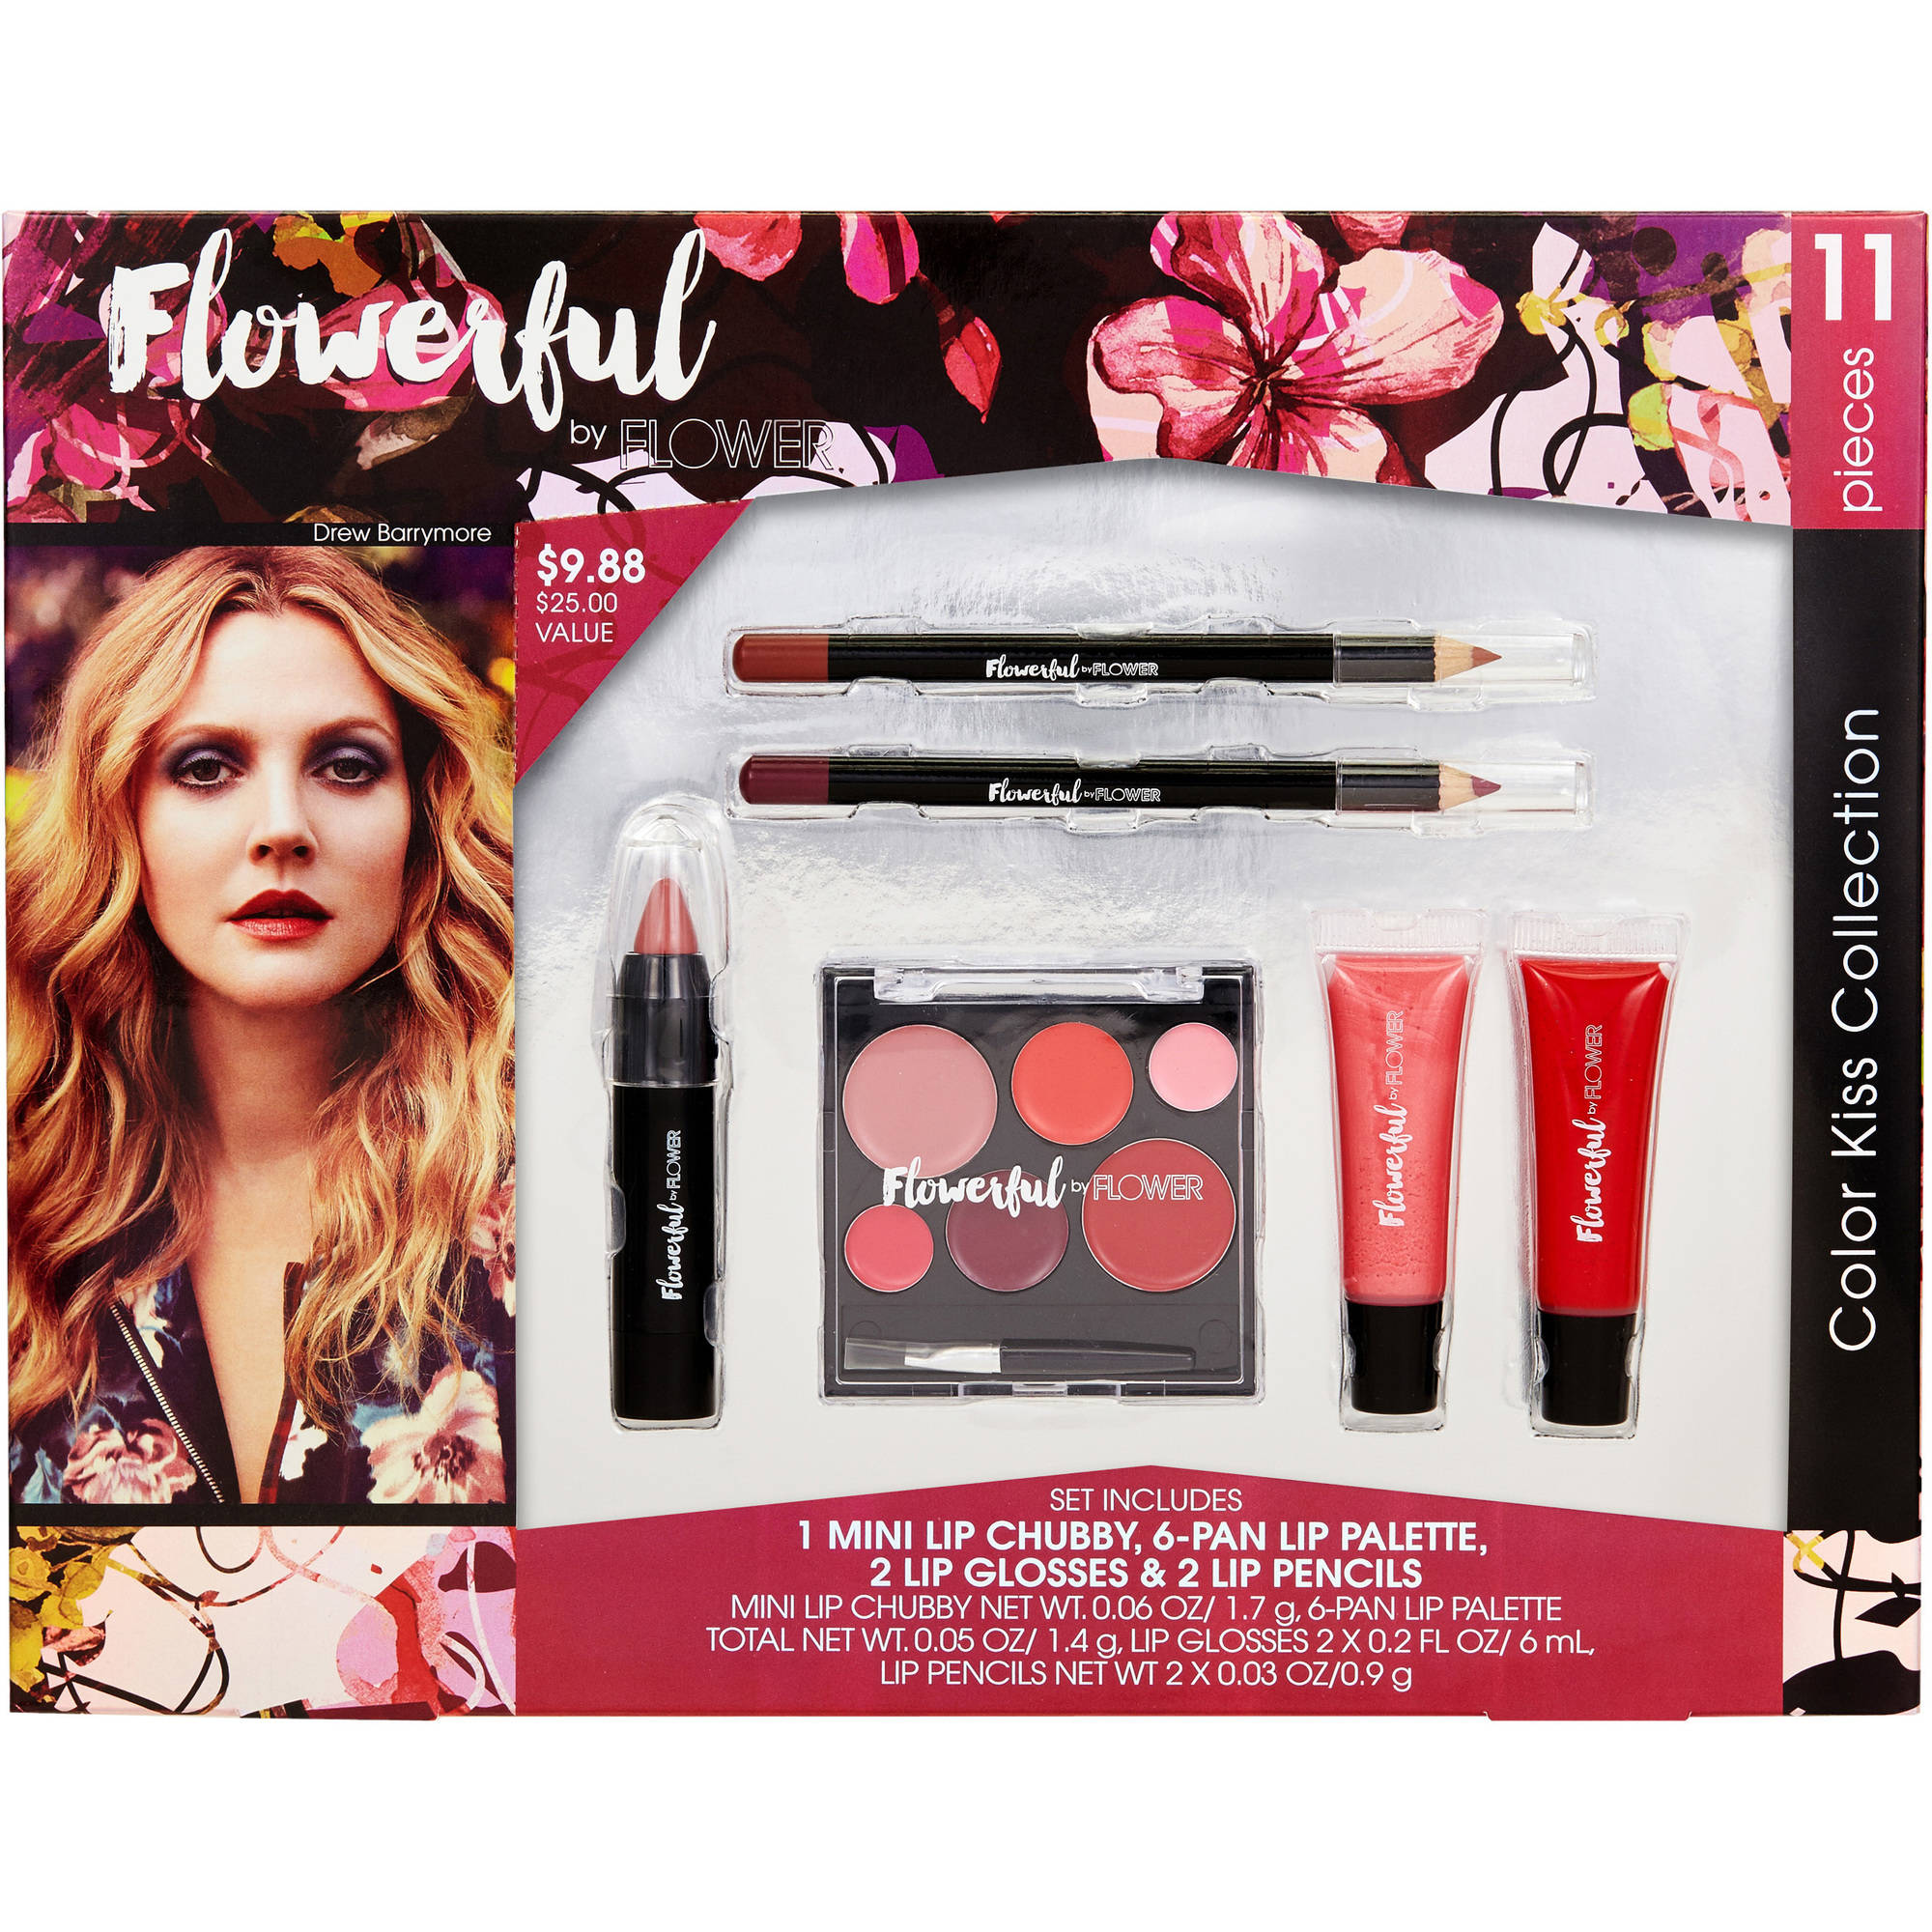 Flower flowerful color kiss collection gift set 11 pc walmart izmirmasajfo Image collections